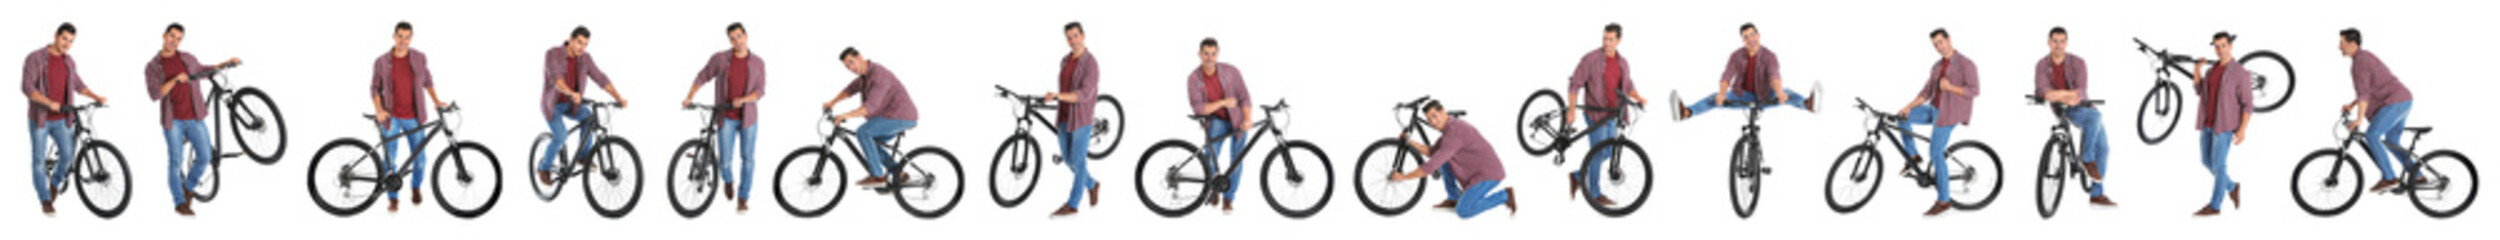 Collage of handsome young man with bicycle on white background. Banner design